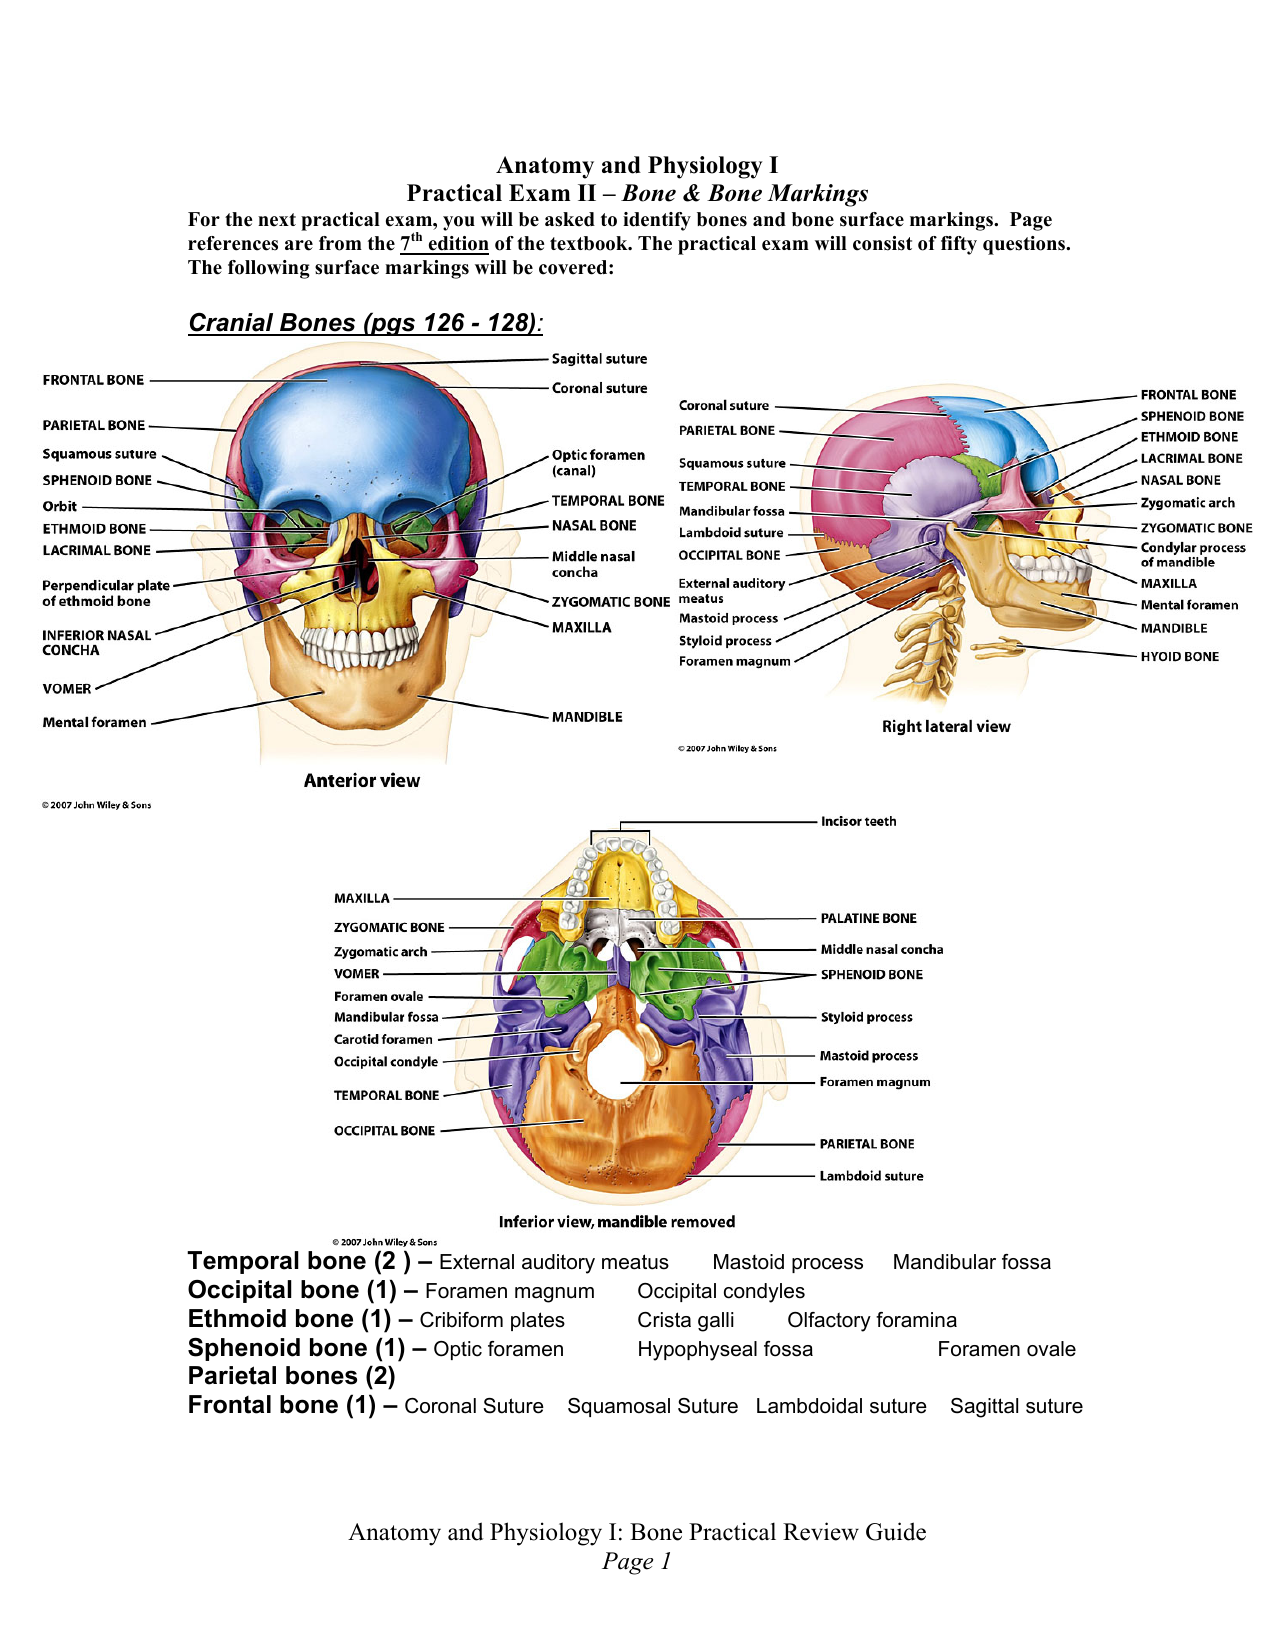 Anatomy And Physiology I Bone Practical Review Guide Page 1